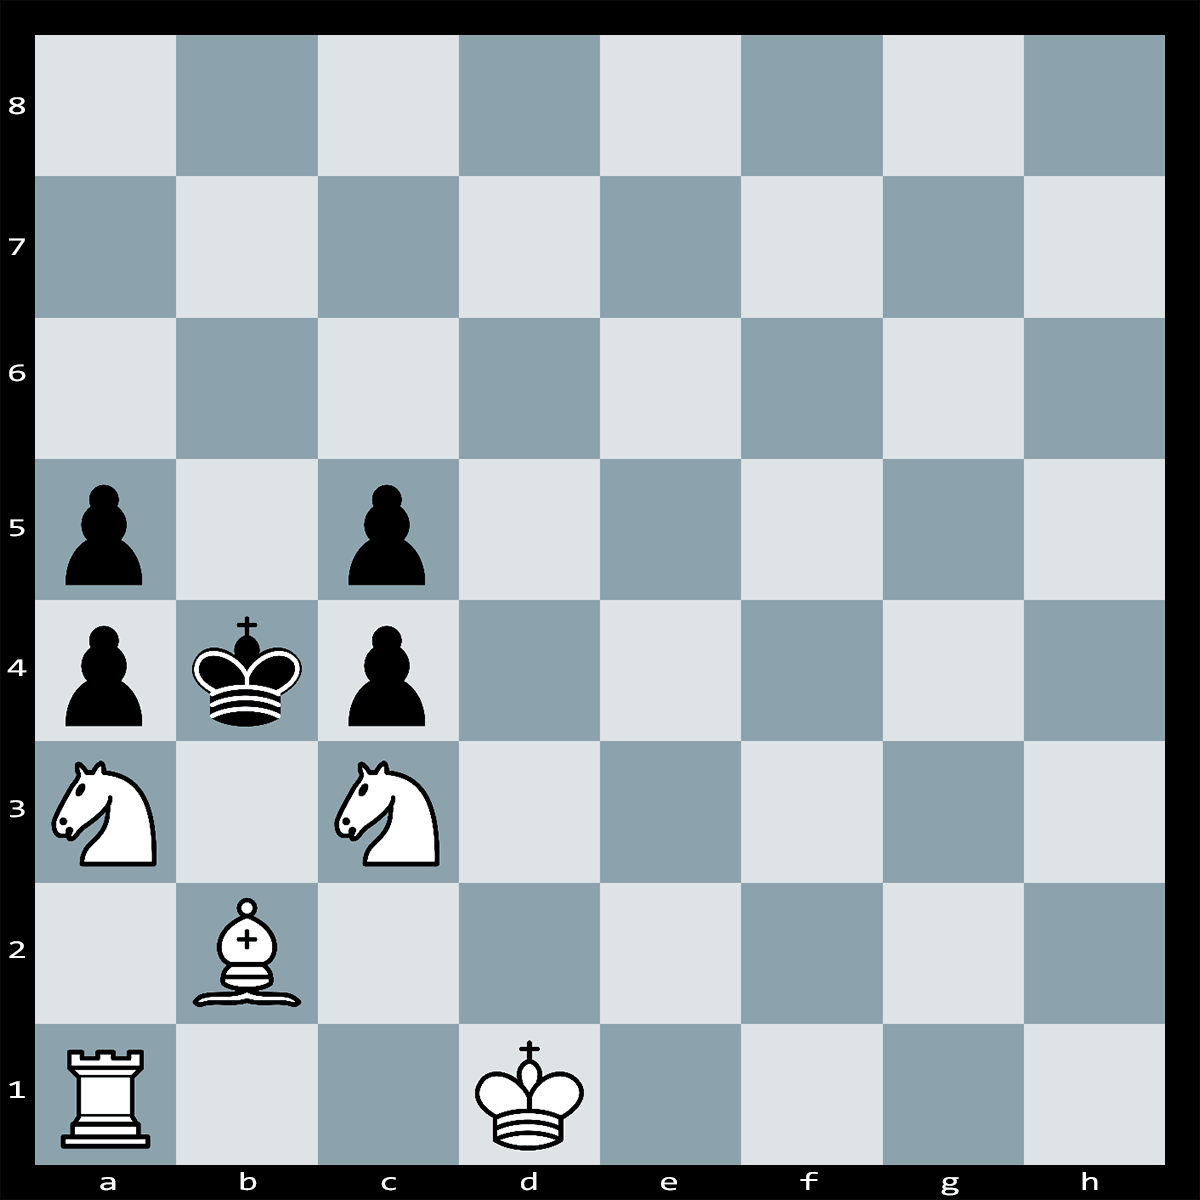 Chess Puzzle #279 | How can White force checkmate from this position? It's White to play and checkmate in three.